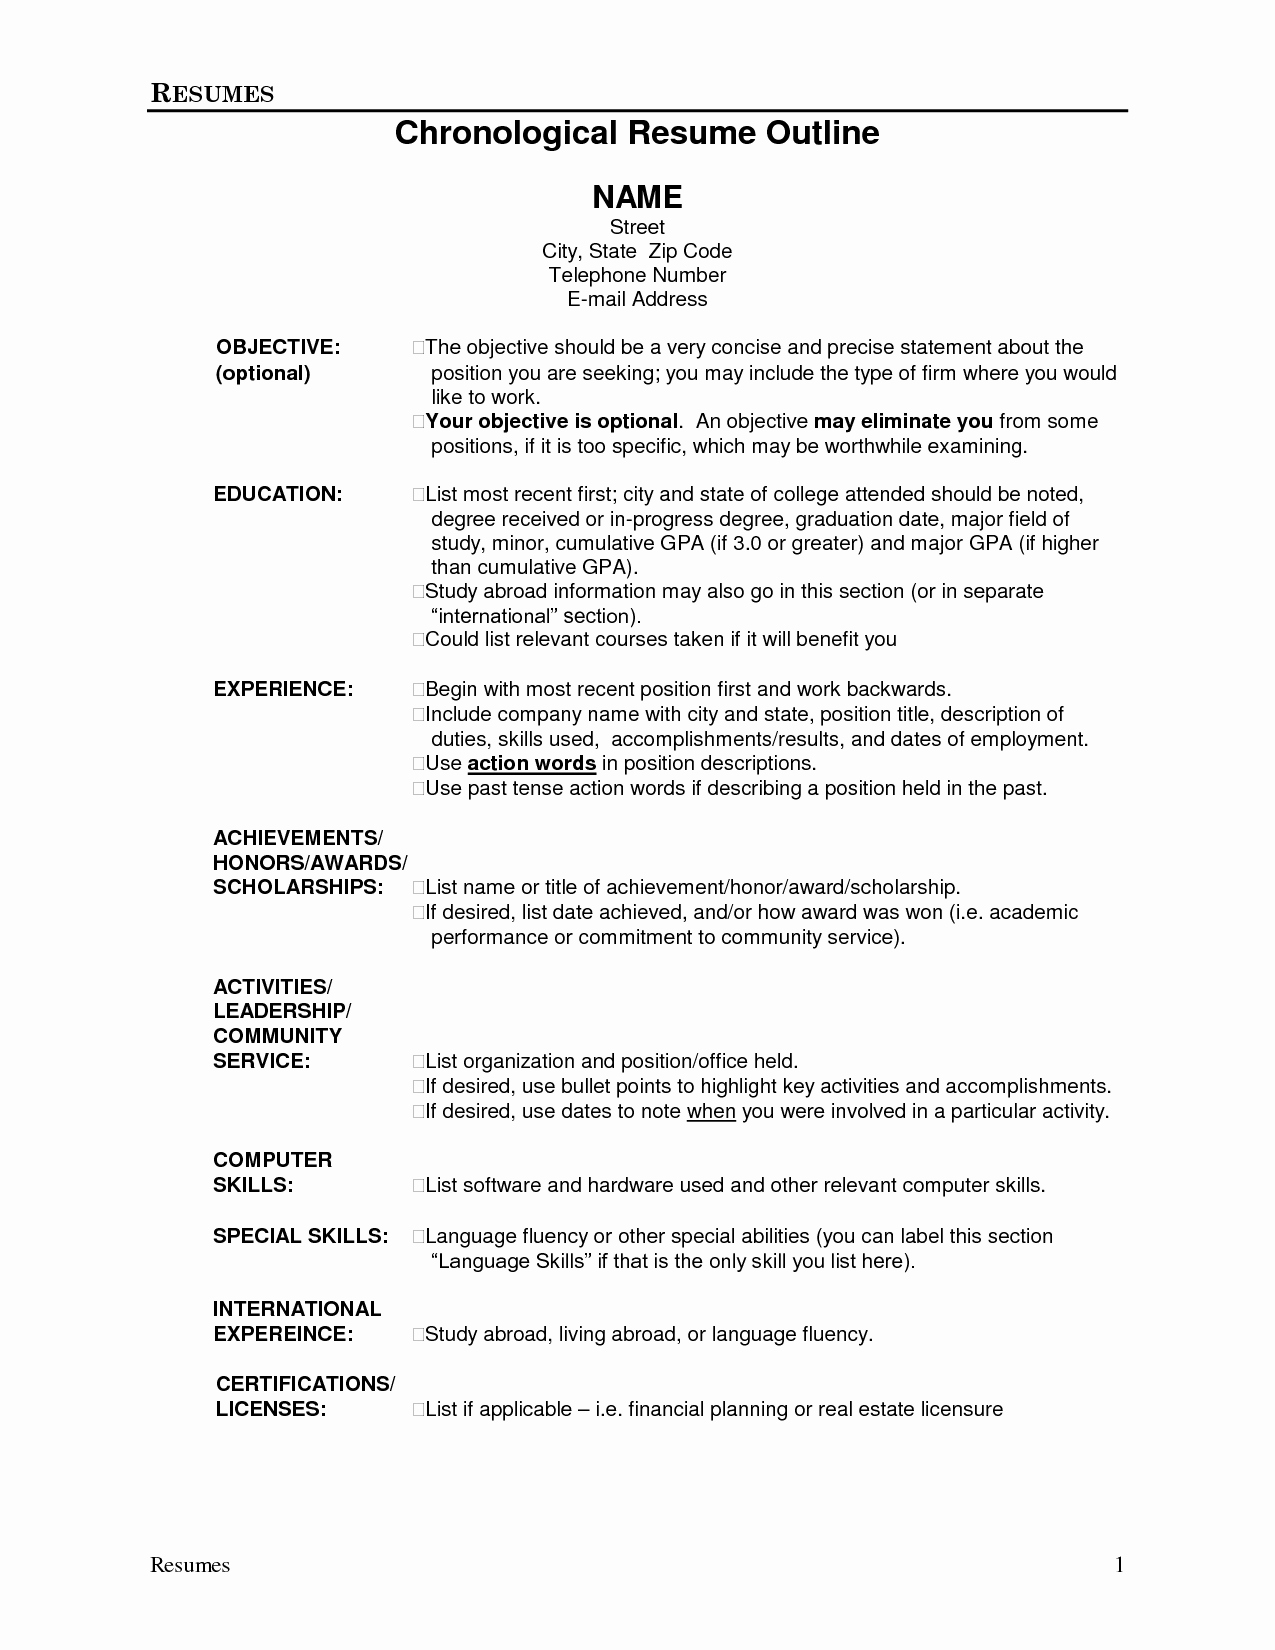 College Scholarship Resume Objective